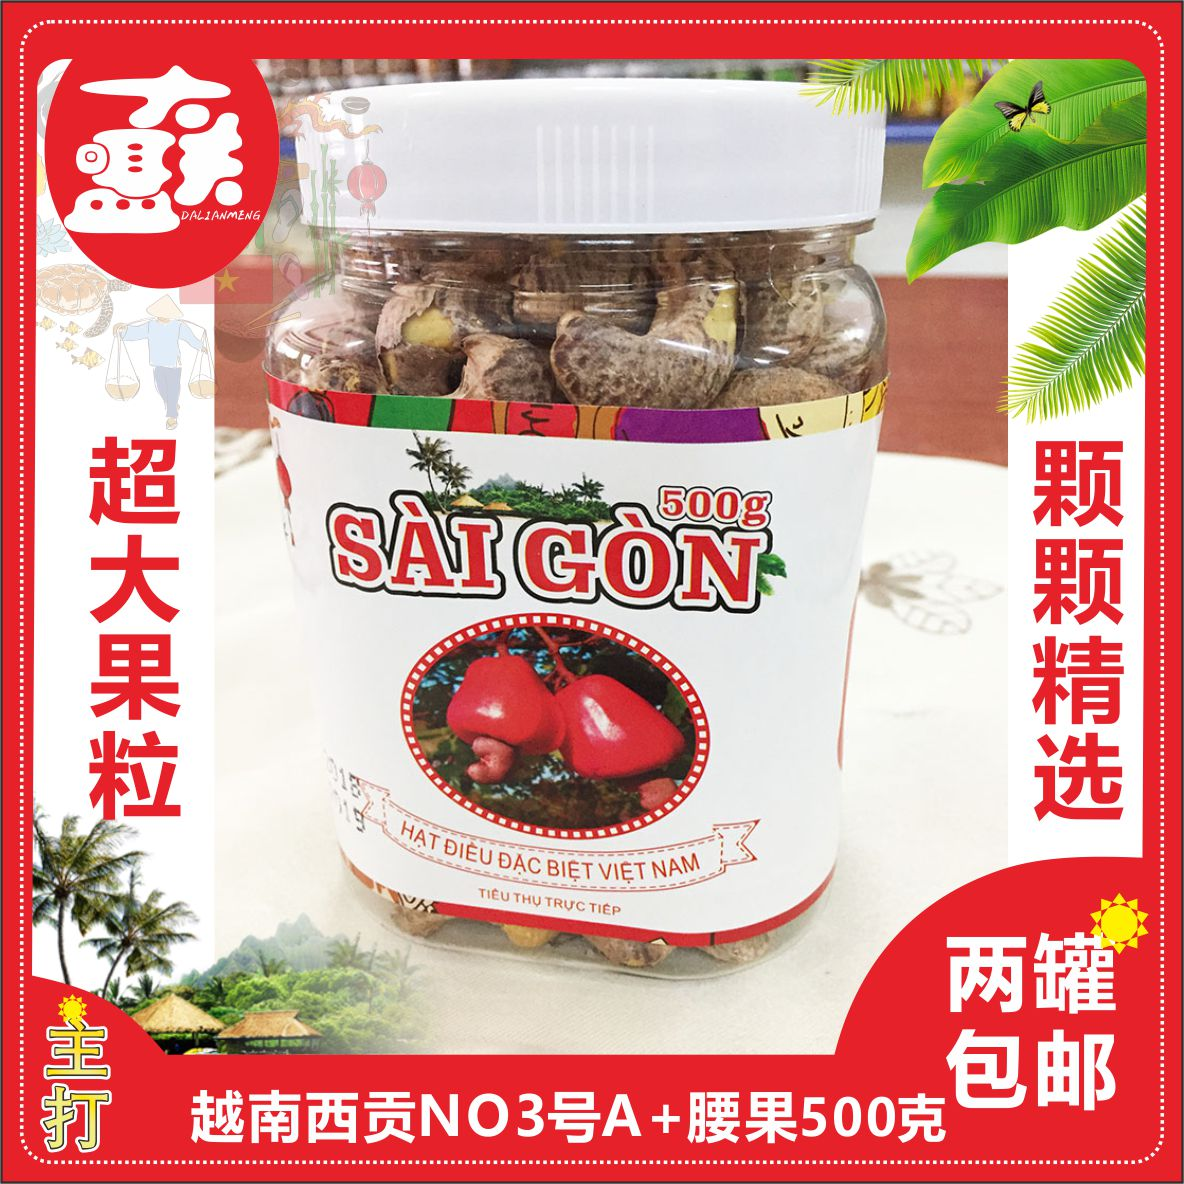 Vietnams original imported snack special product with skin charcoal roasted salt baked taste canned cashew nut Saigon No.3 500g